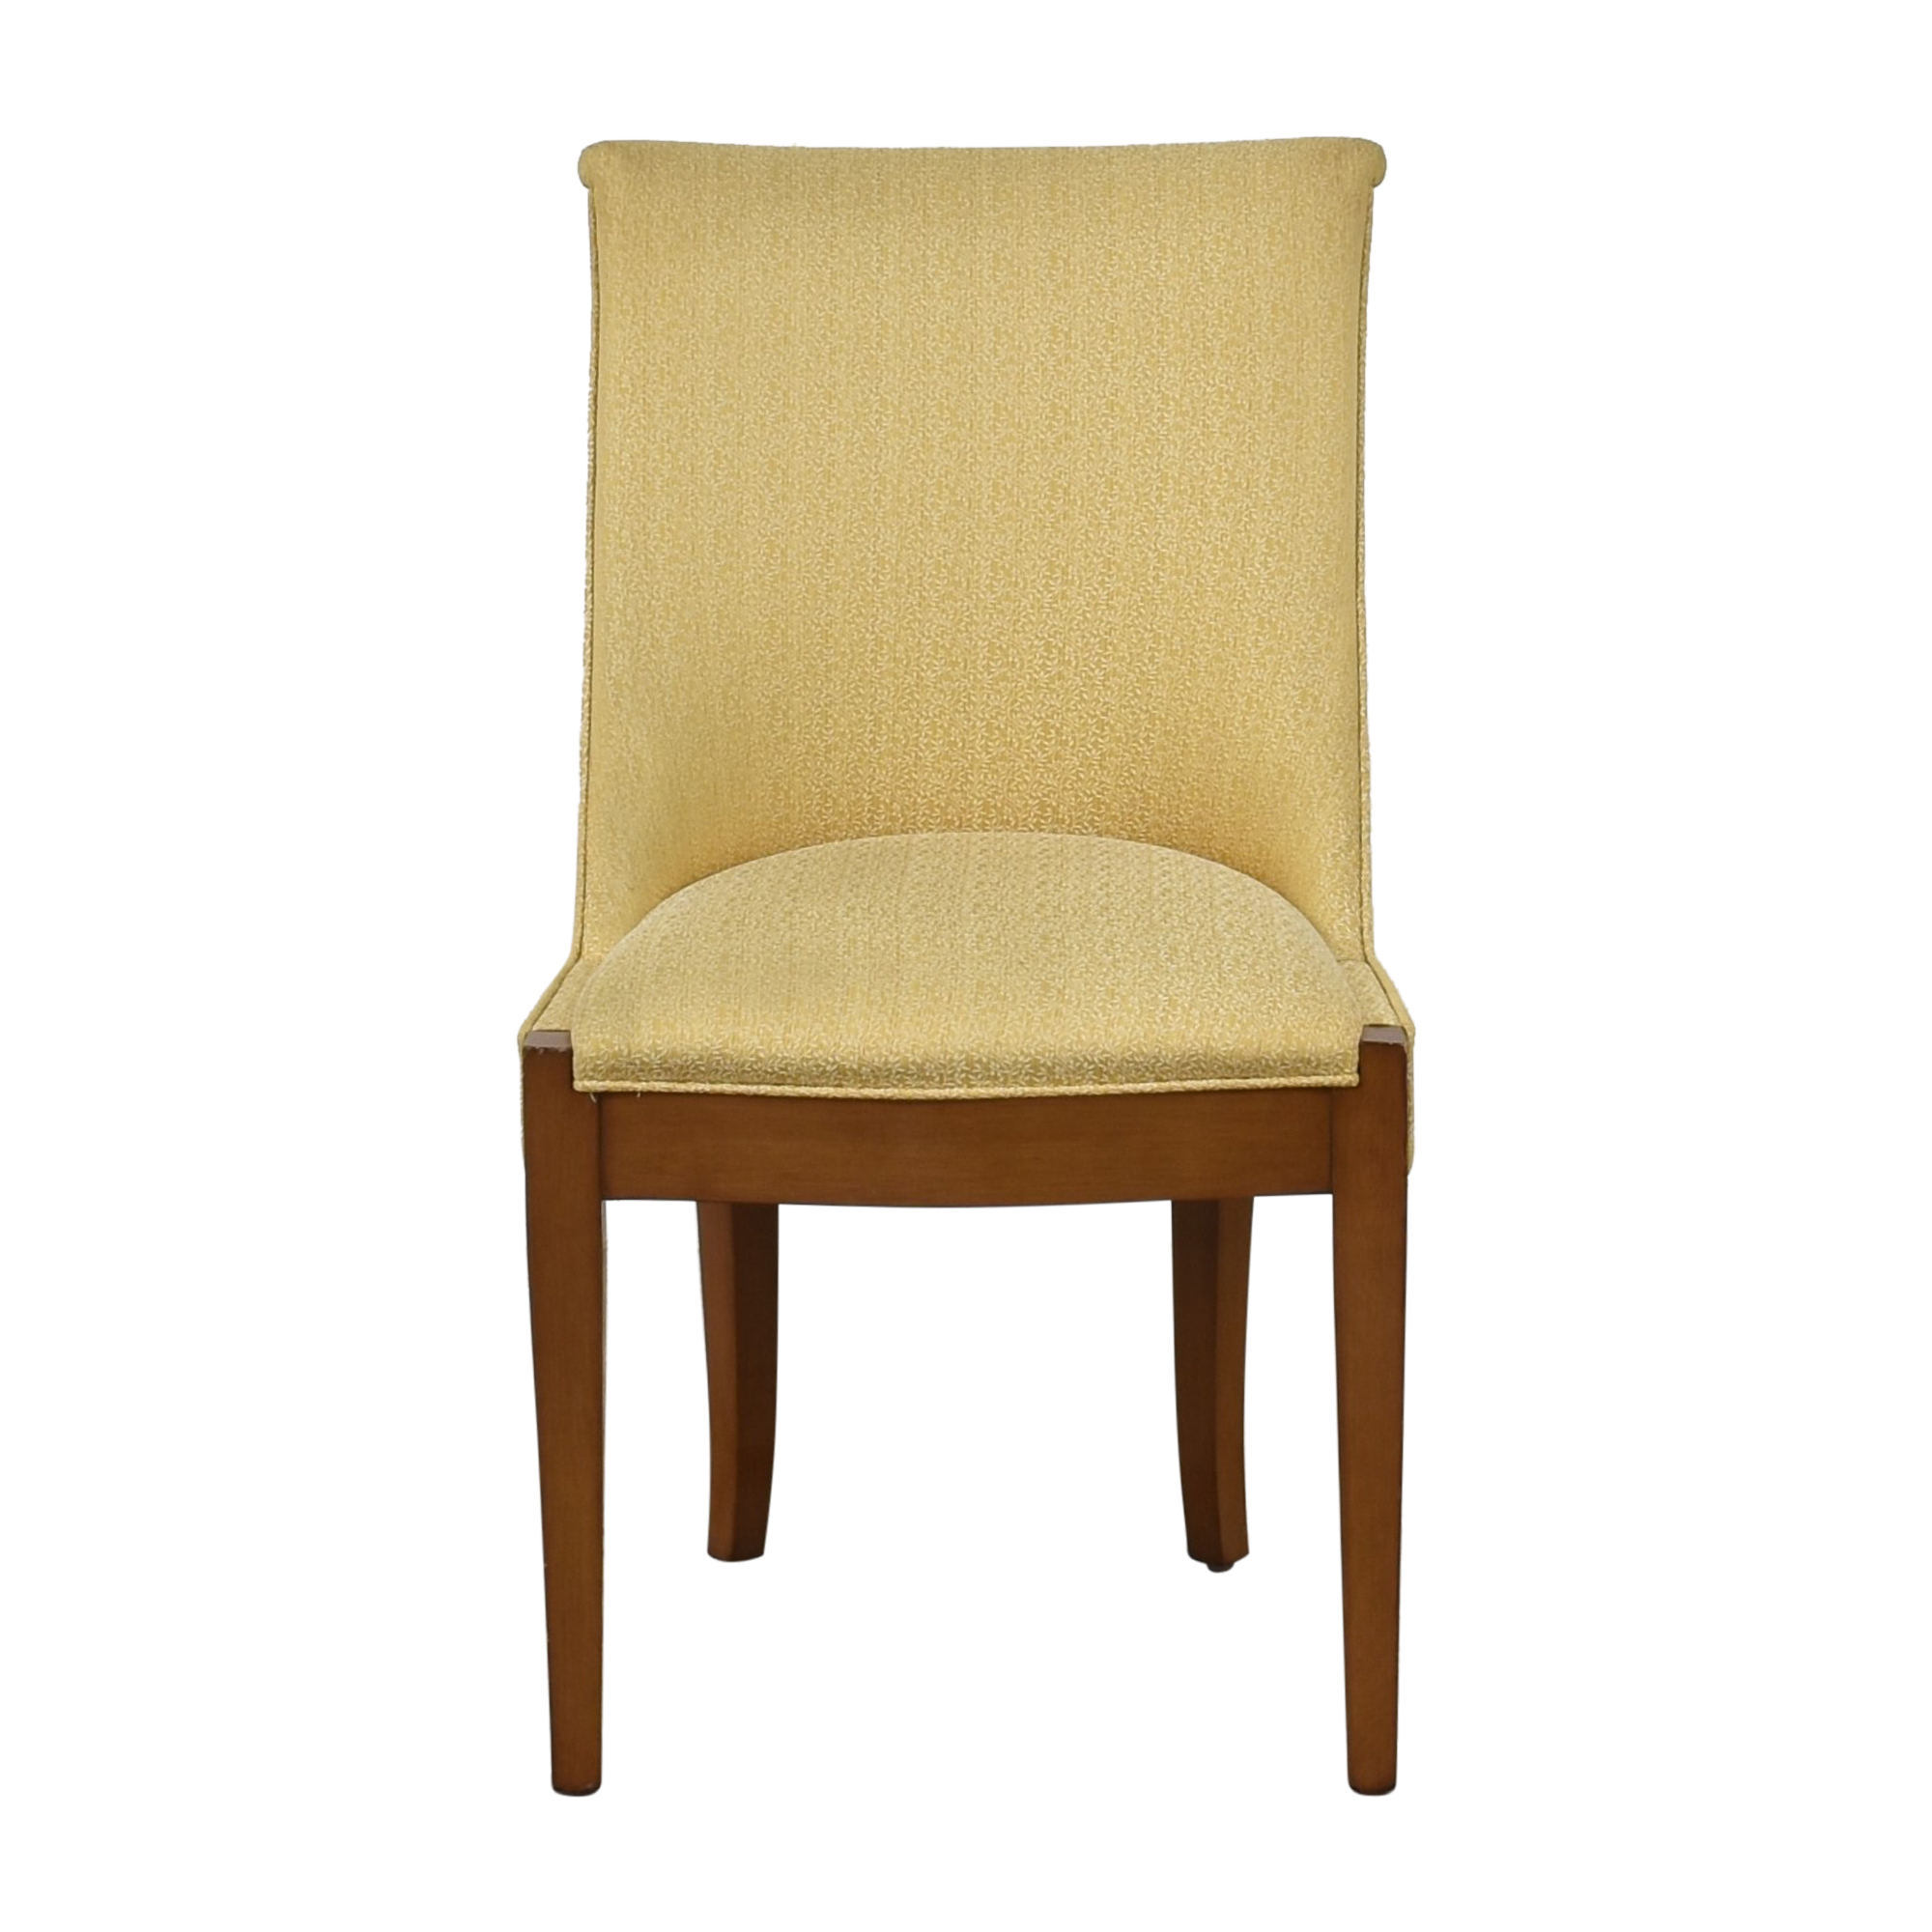 Traditional Scroll Back Dining Chair dimensions